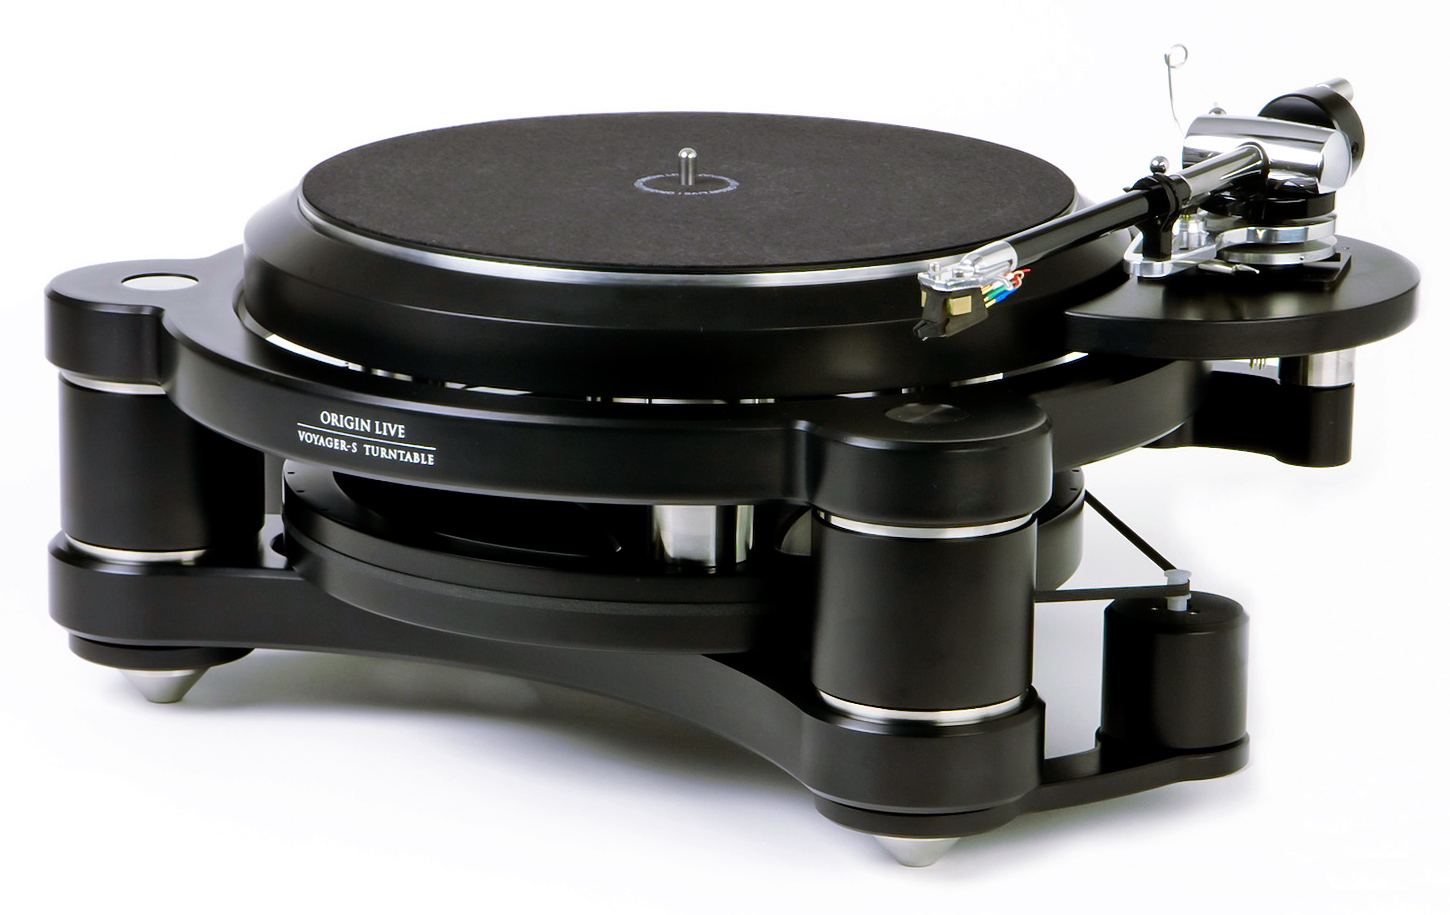 voyager turntable black origin live technical support for turntable image